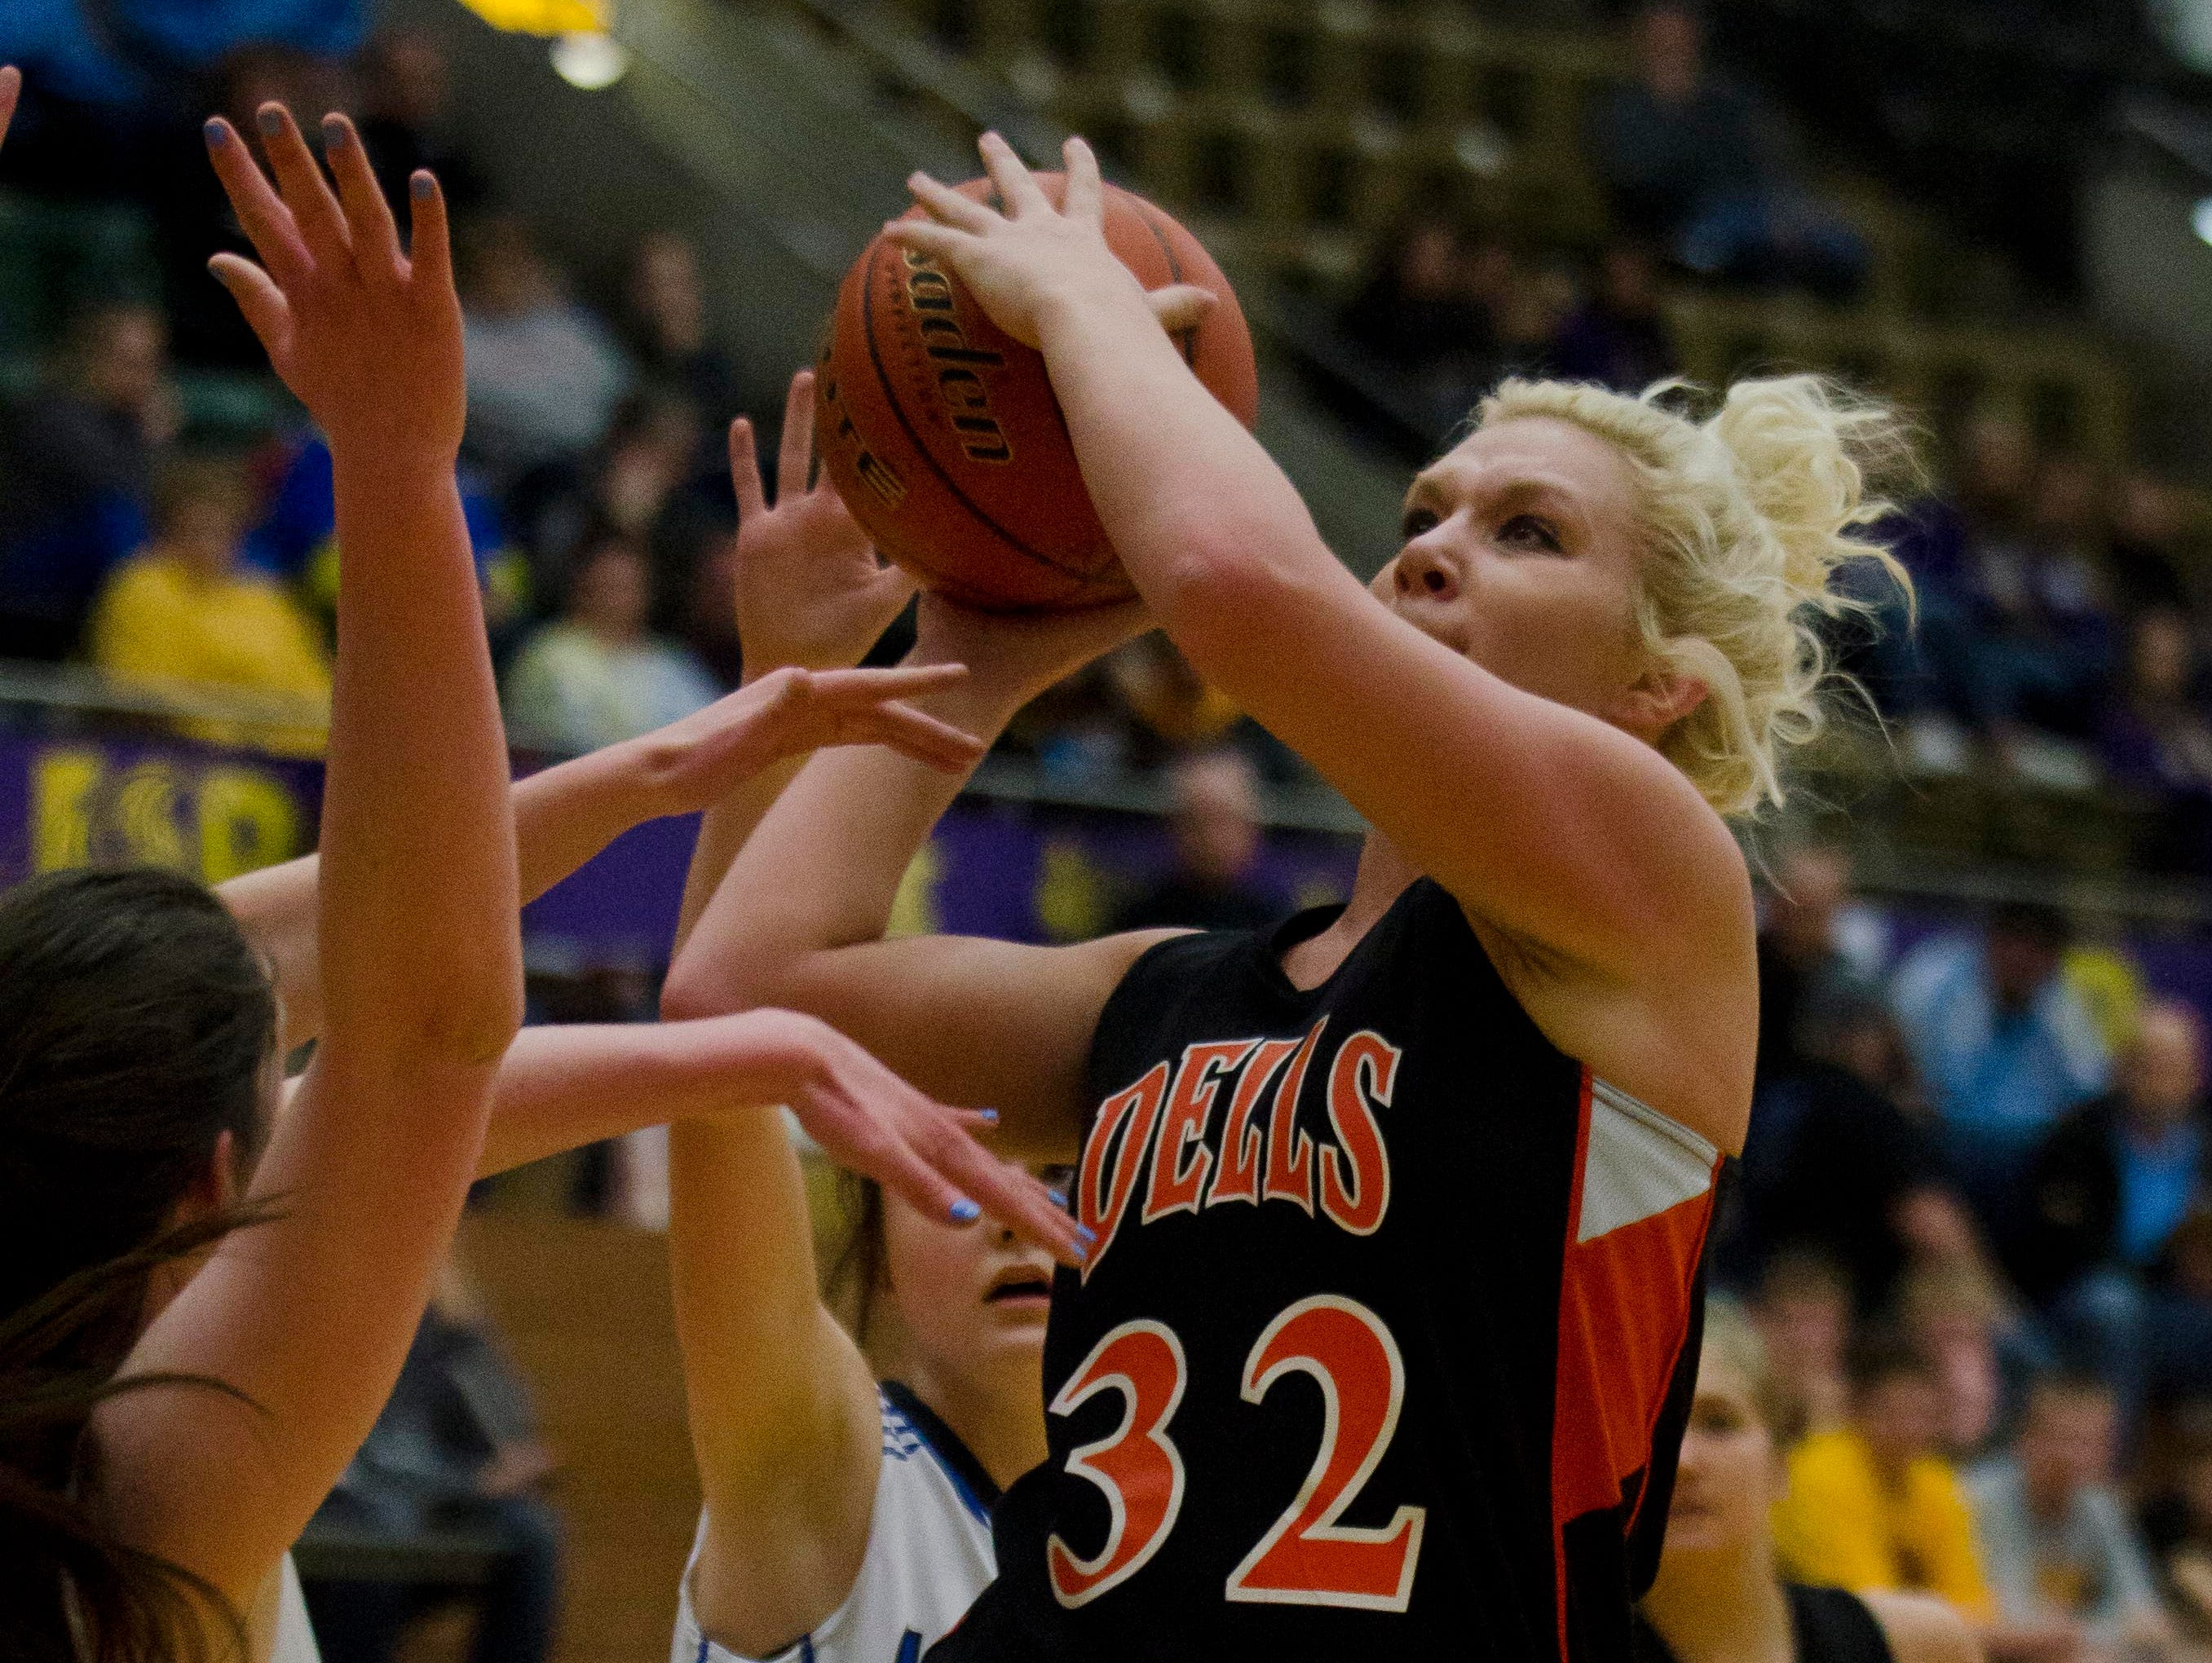 Mikaela Stofferahn of Dell Rapids shoots over a St. Thomas More defender Thursday, March 10, in the Class A state quarterfinals at Watertown Civic Arena.